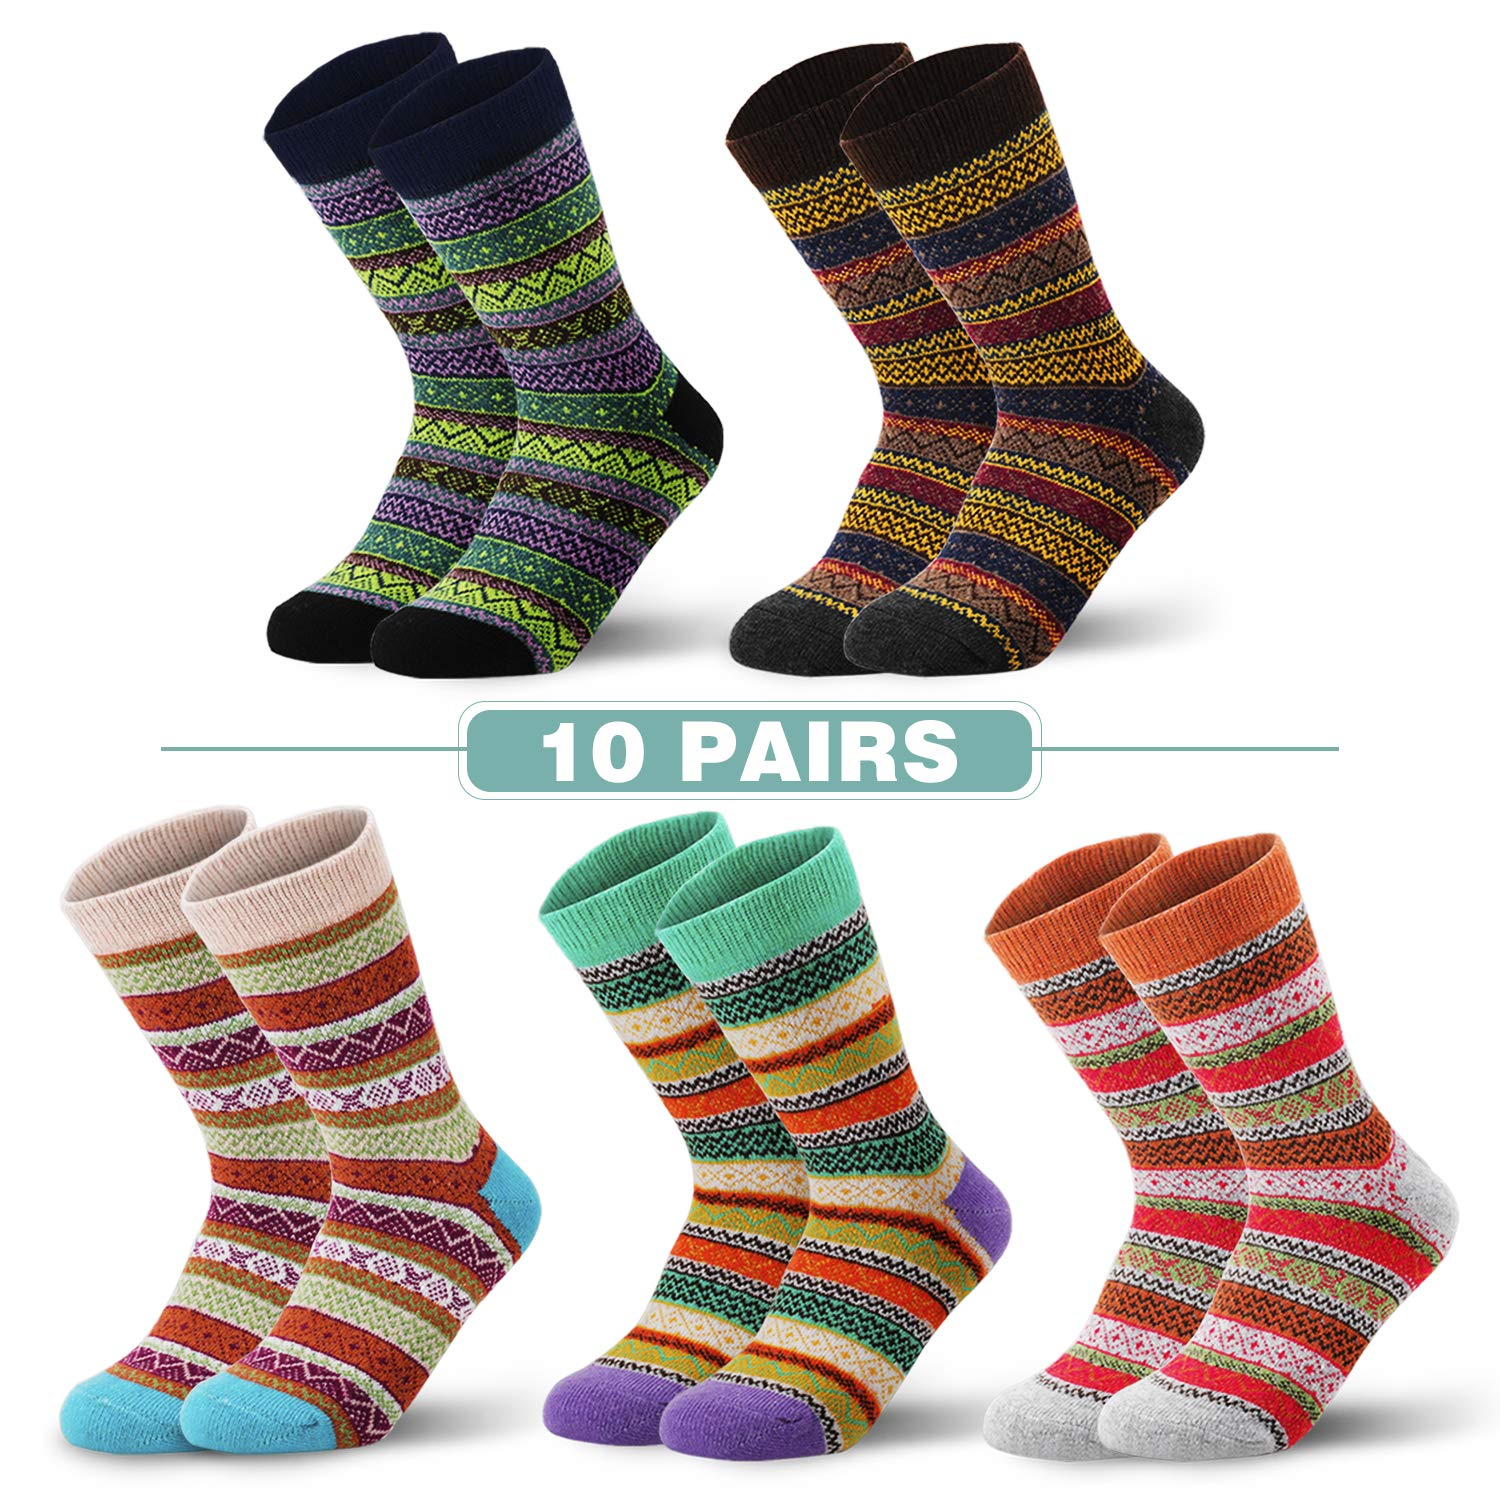 10 pair Womens winter wool socks